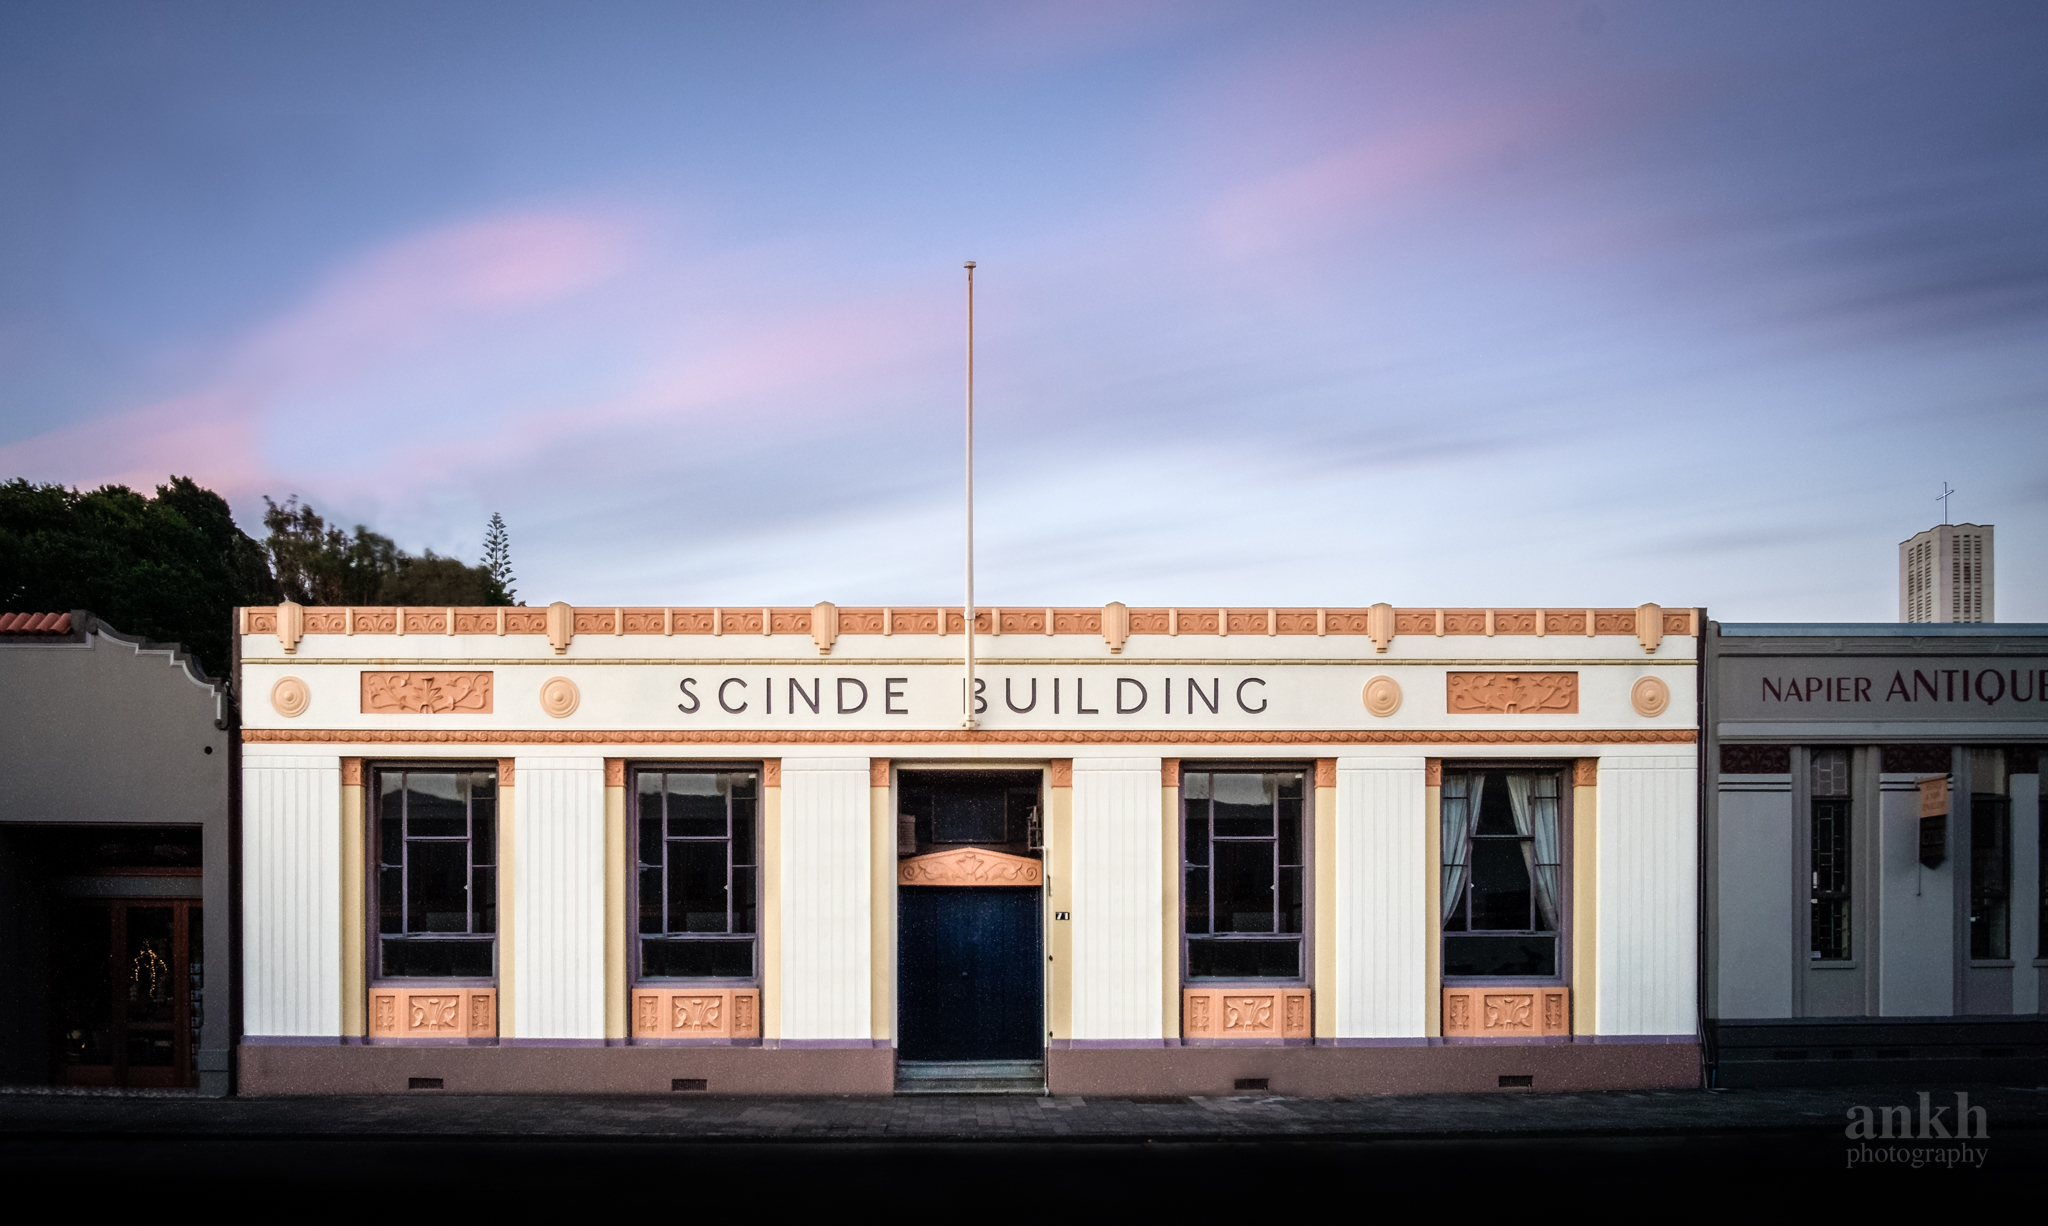 Different Times, Different Light: Scinde Building